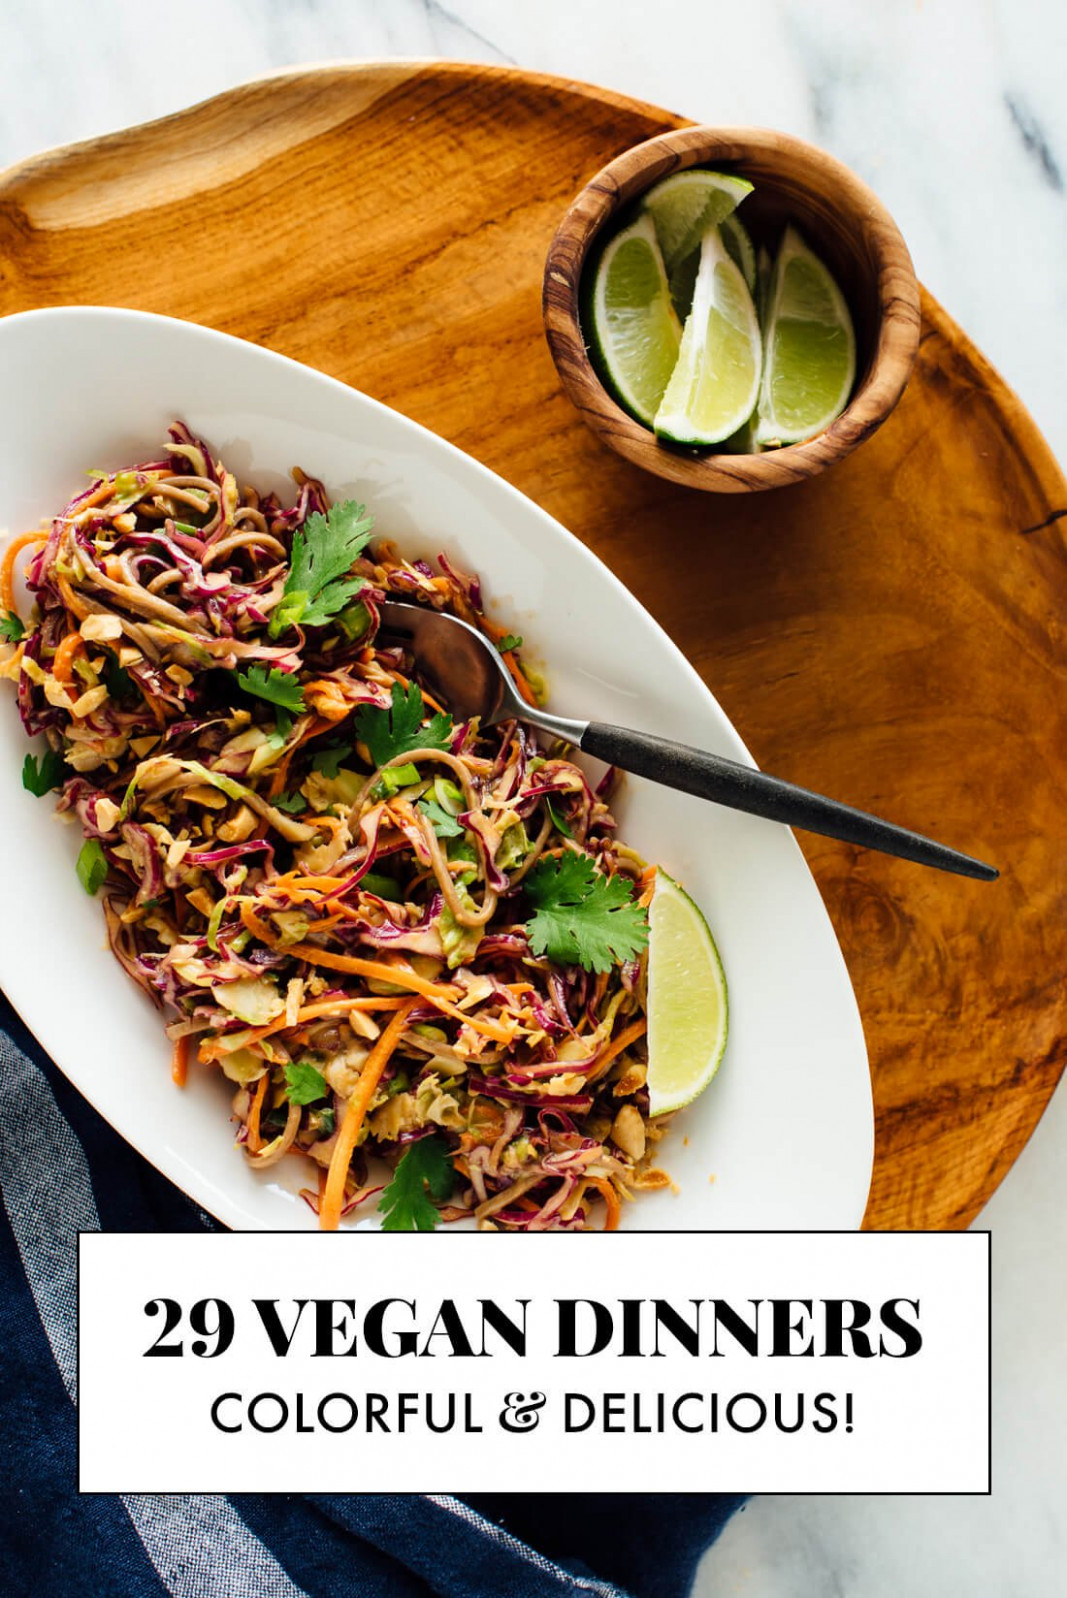 13 Delicious Vegan Dinner Recipes - Cookie and Kate - vegetarian recipes you can make in advance